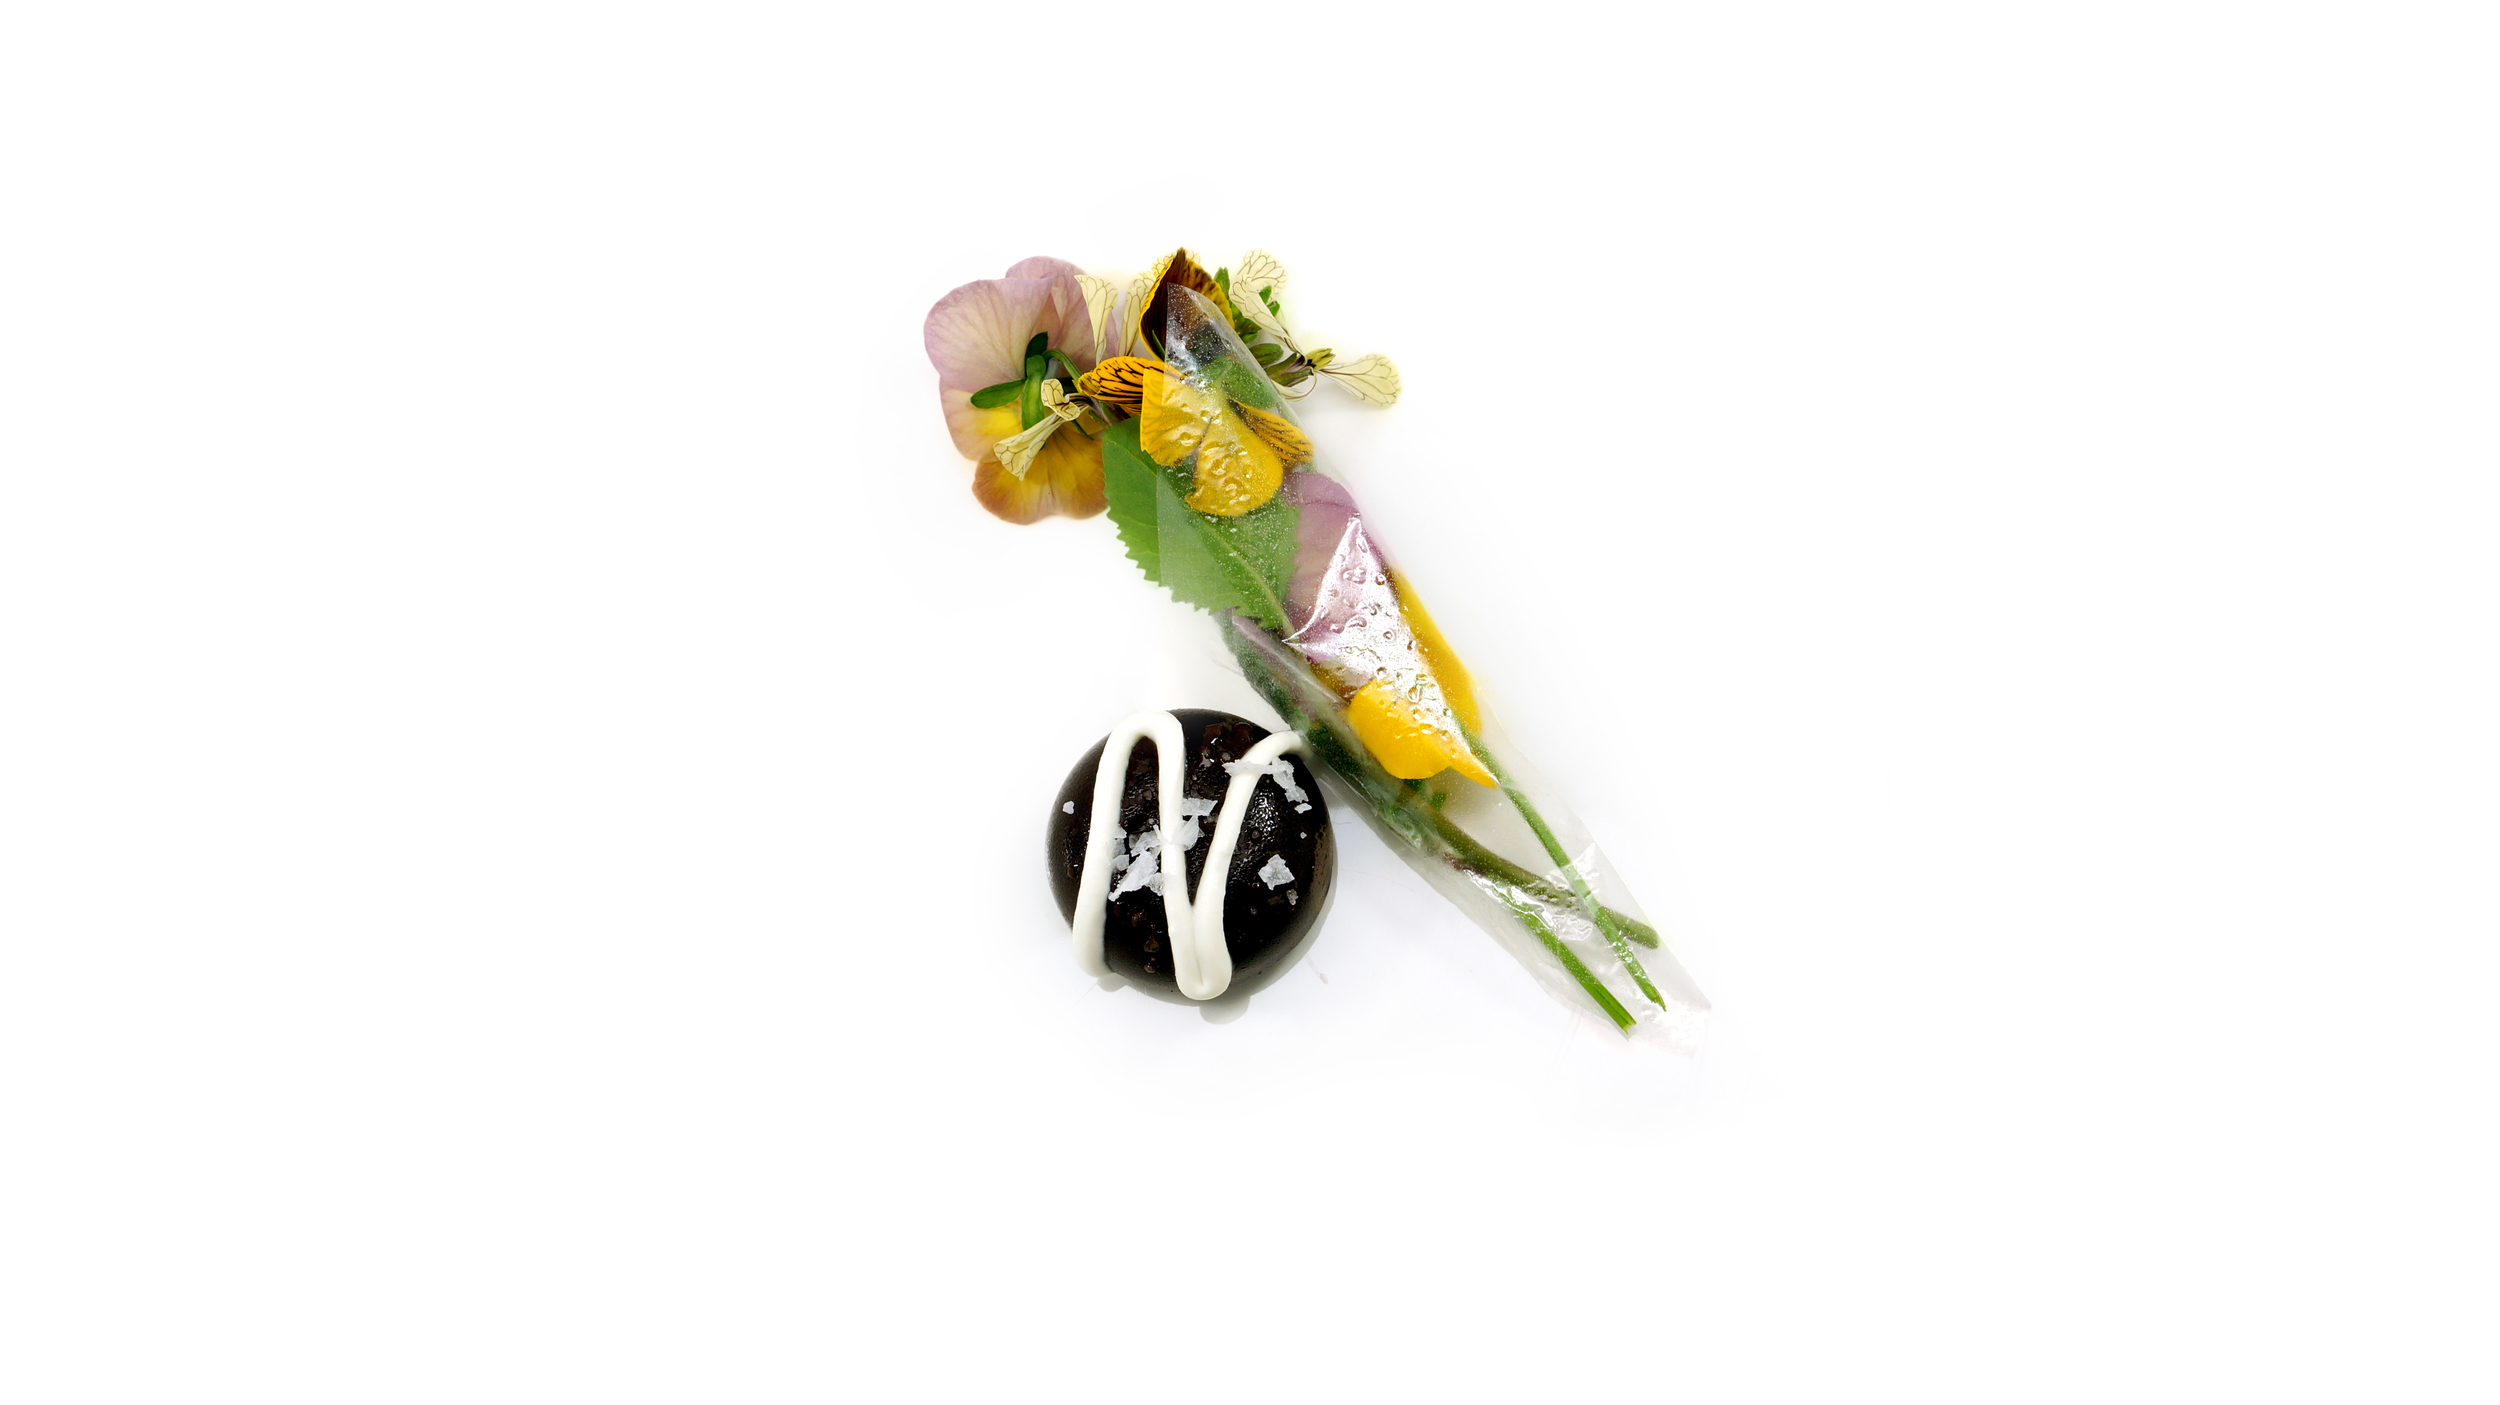 chocolate & flowers |    edible cilant ro bouquet - mole yam chocolate - sour cream - sea salt